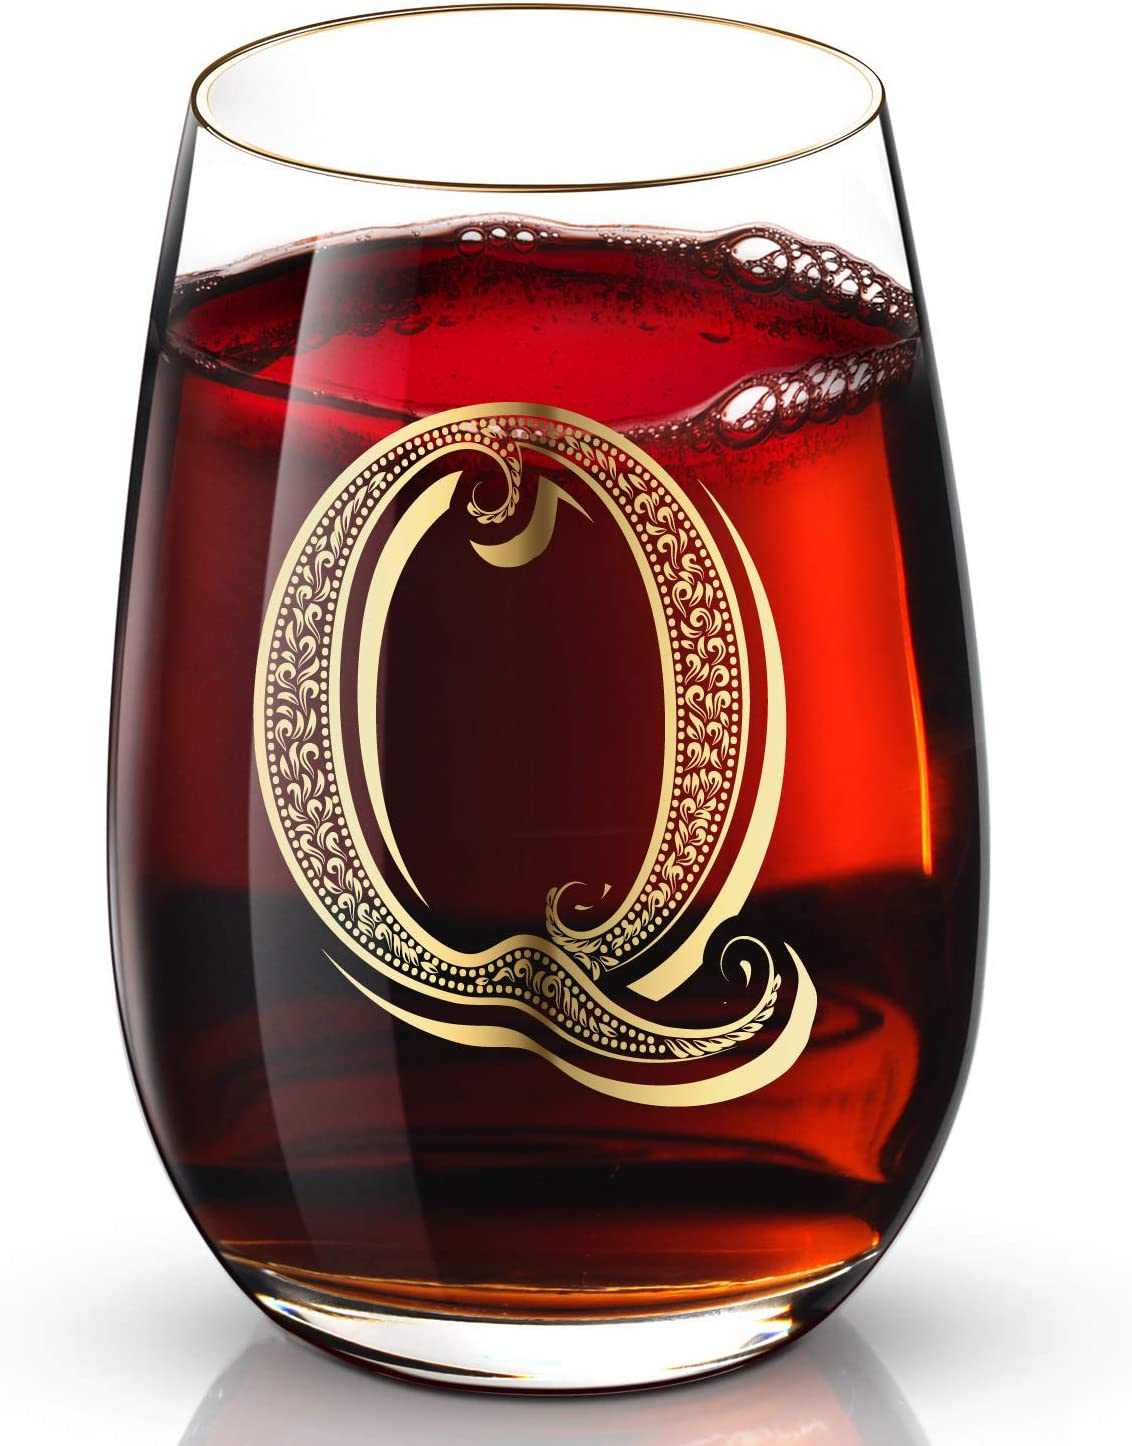 Q Customized 24K Gold Hand Crafted Luxury Drinking and Wine Glass for Wedding,Anniversary,Birthday and any Noteworthy Occasions,Products Also Come With Your Choices of Special Meaningful Initials